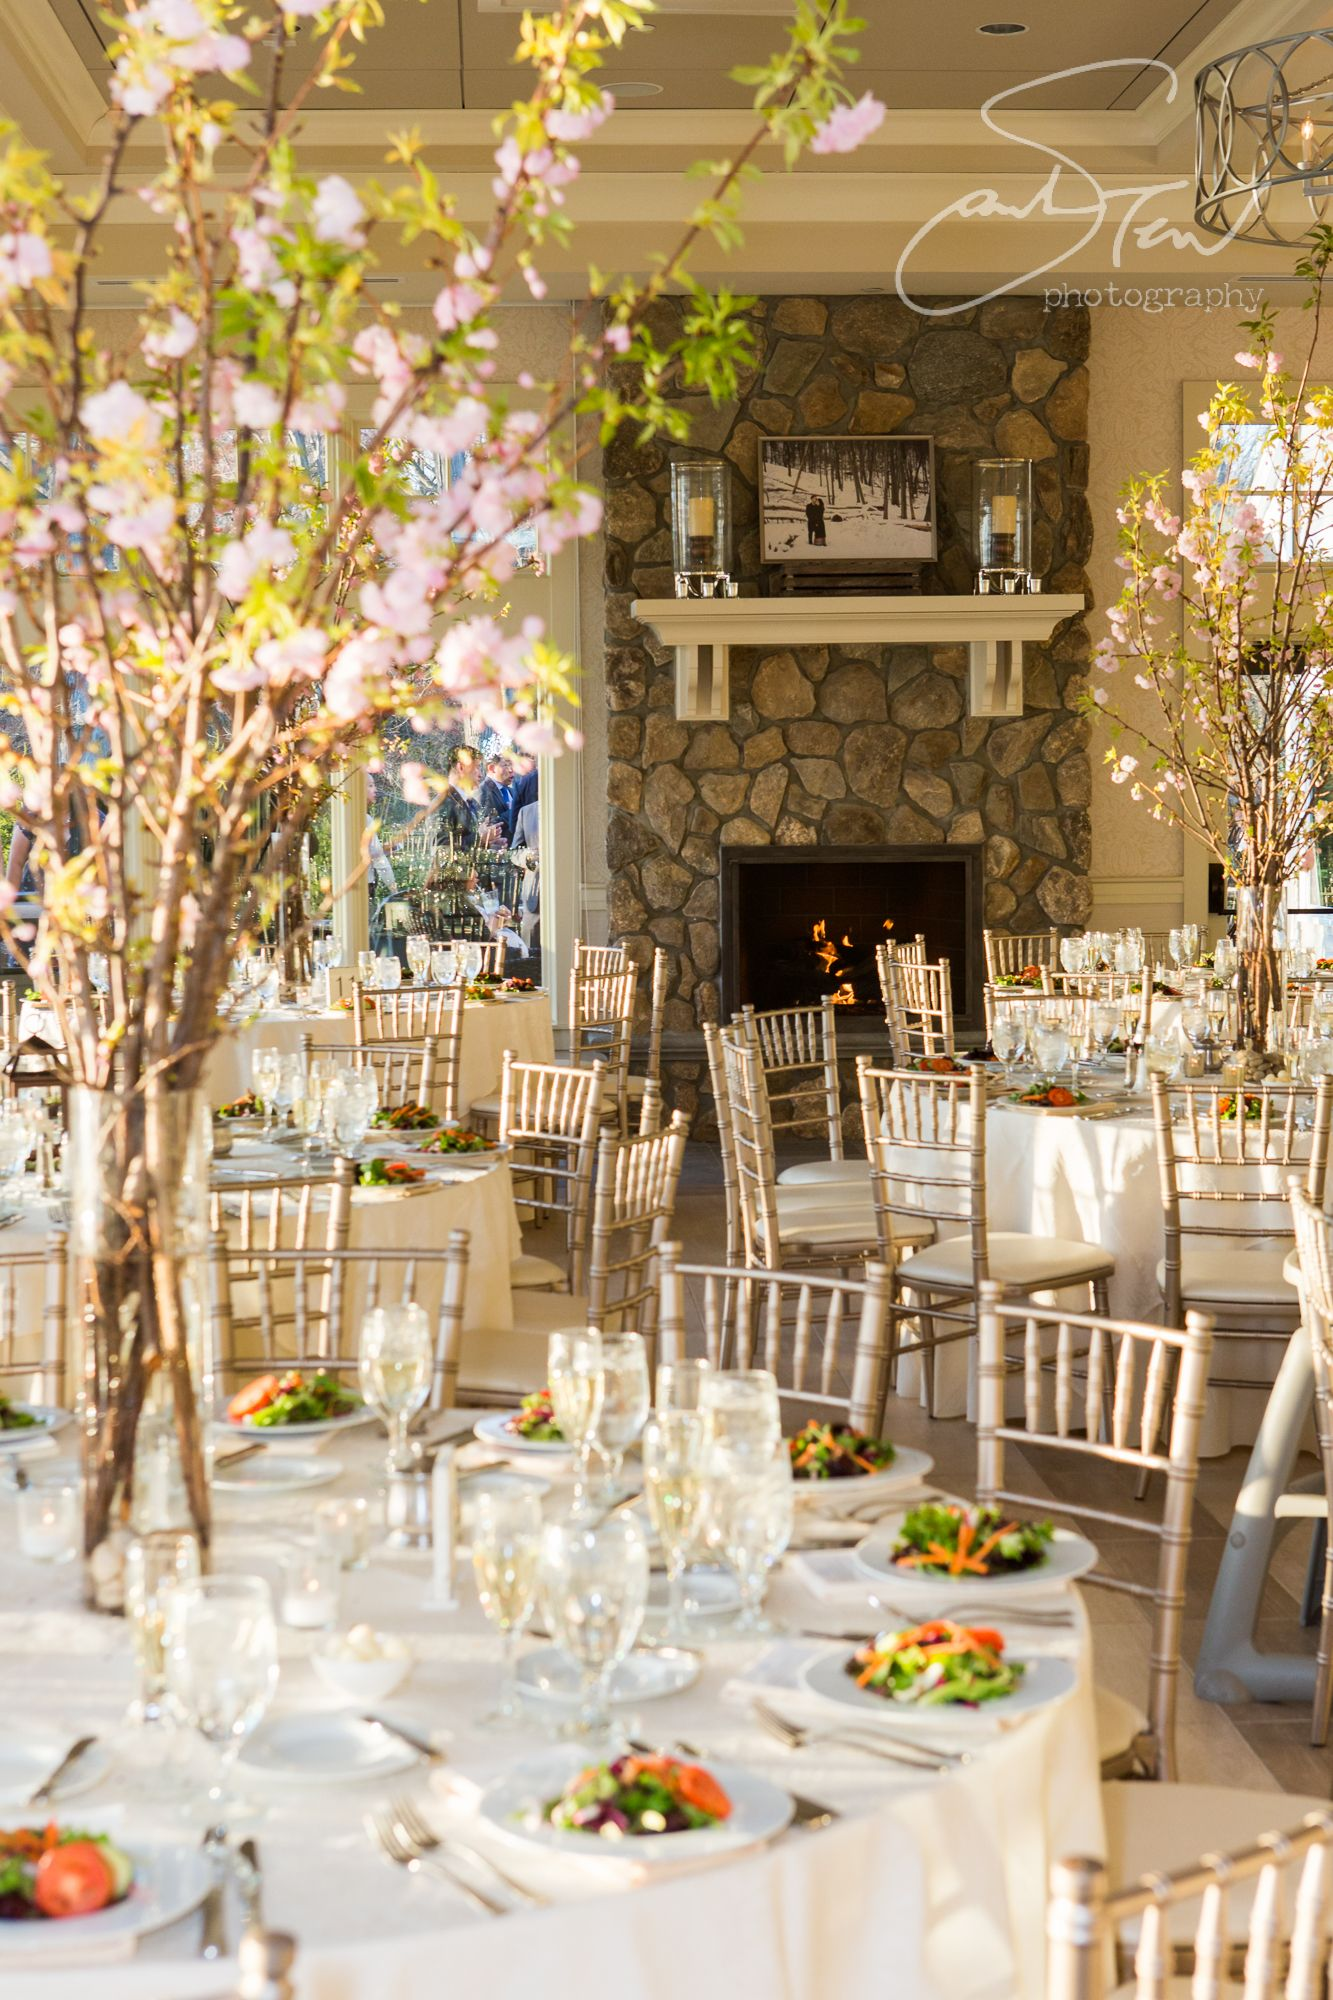 April Wedding At Indian Trail Club In New Jersey C Sarah Tew